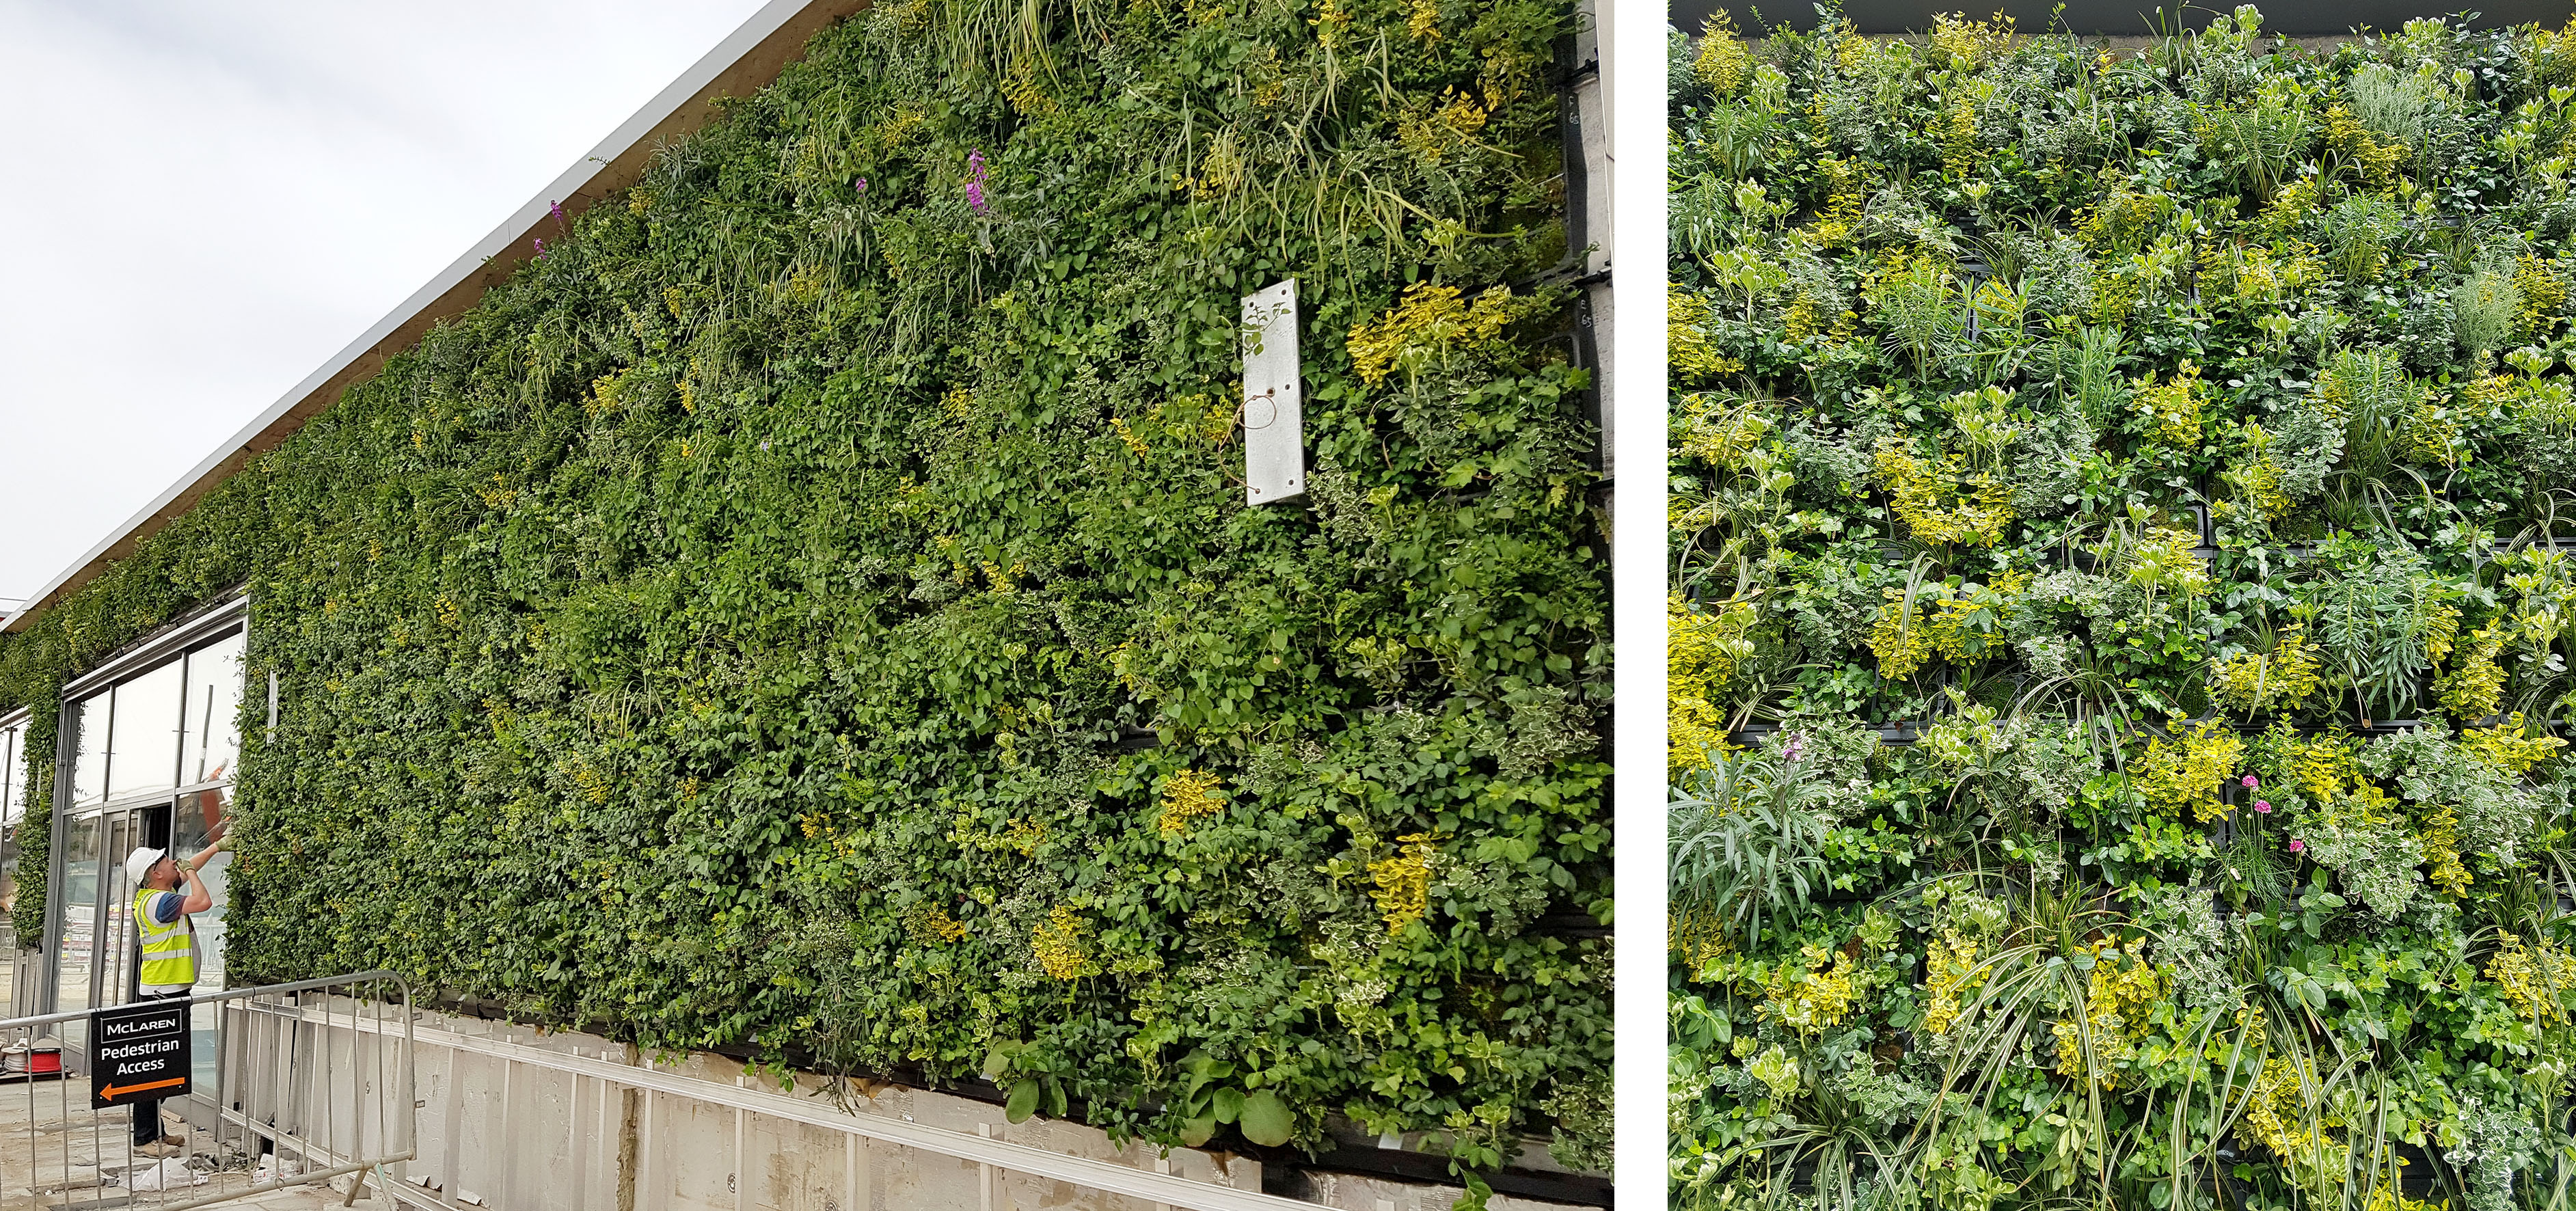 The Green Wall is Going Up!